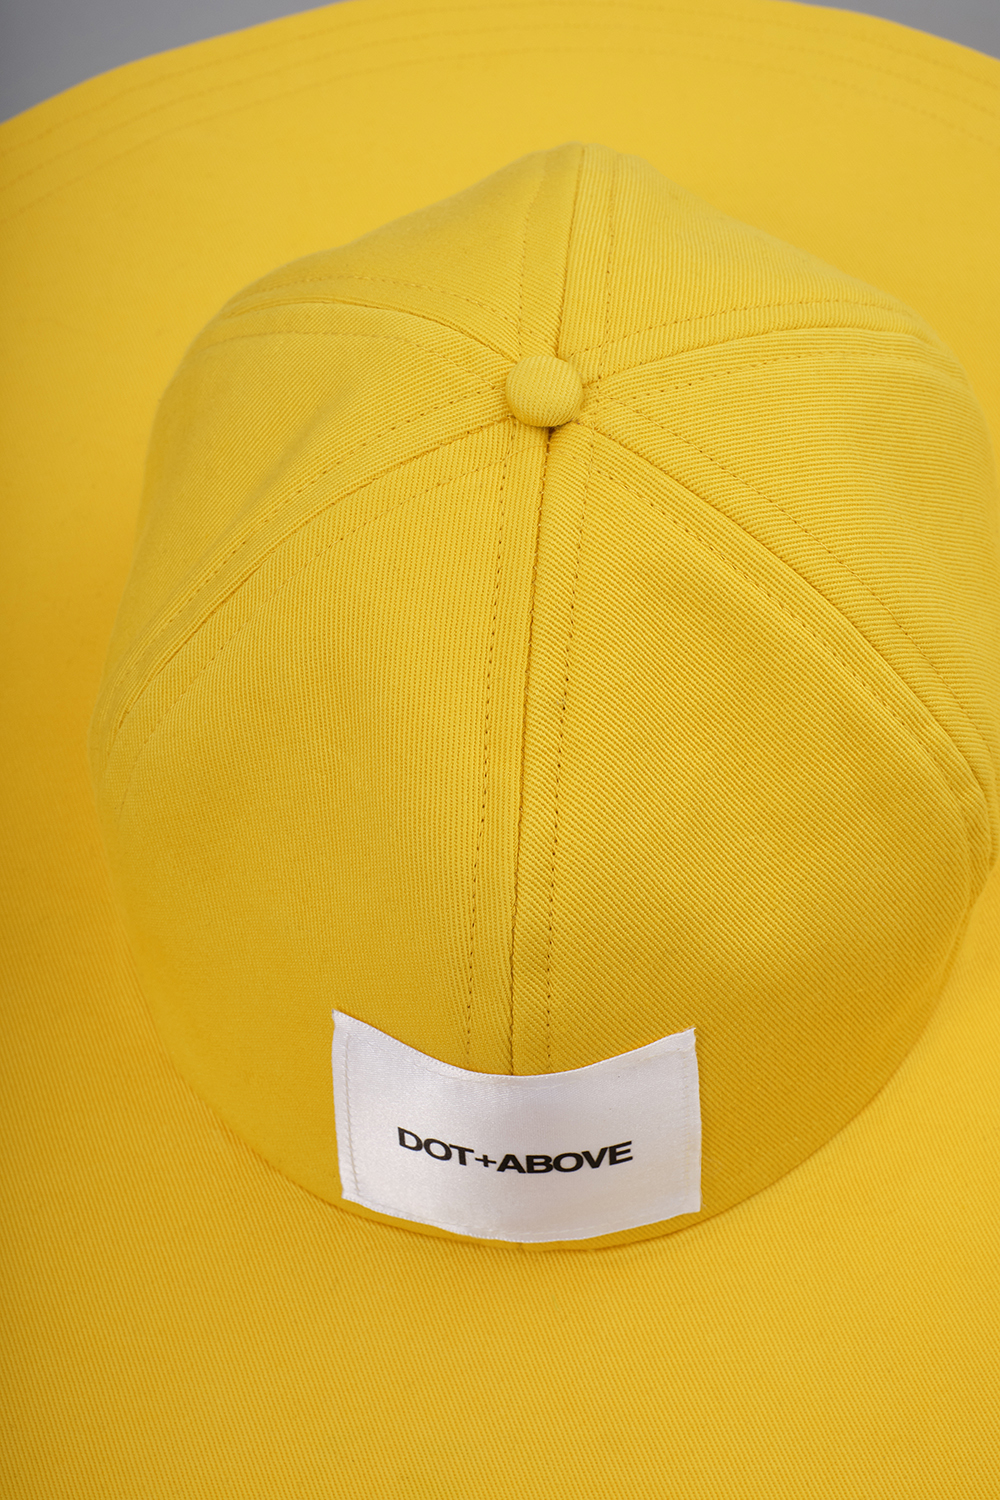 sun-hat-sustainable-fashion-dot-and-above